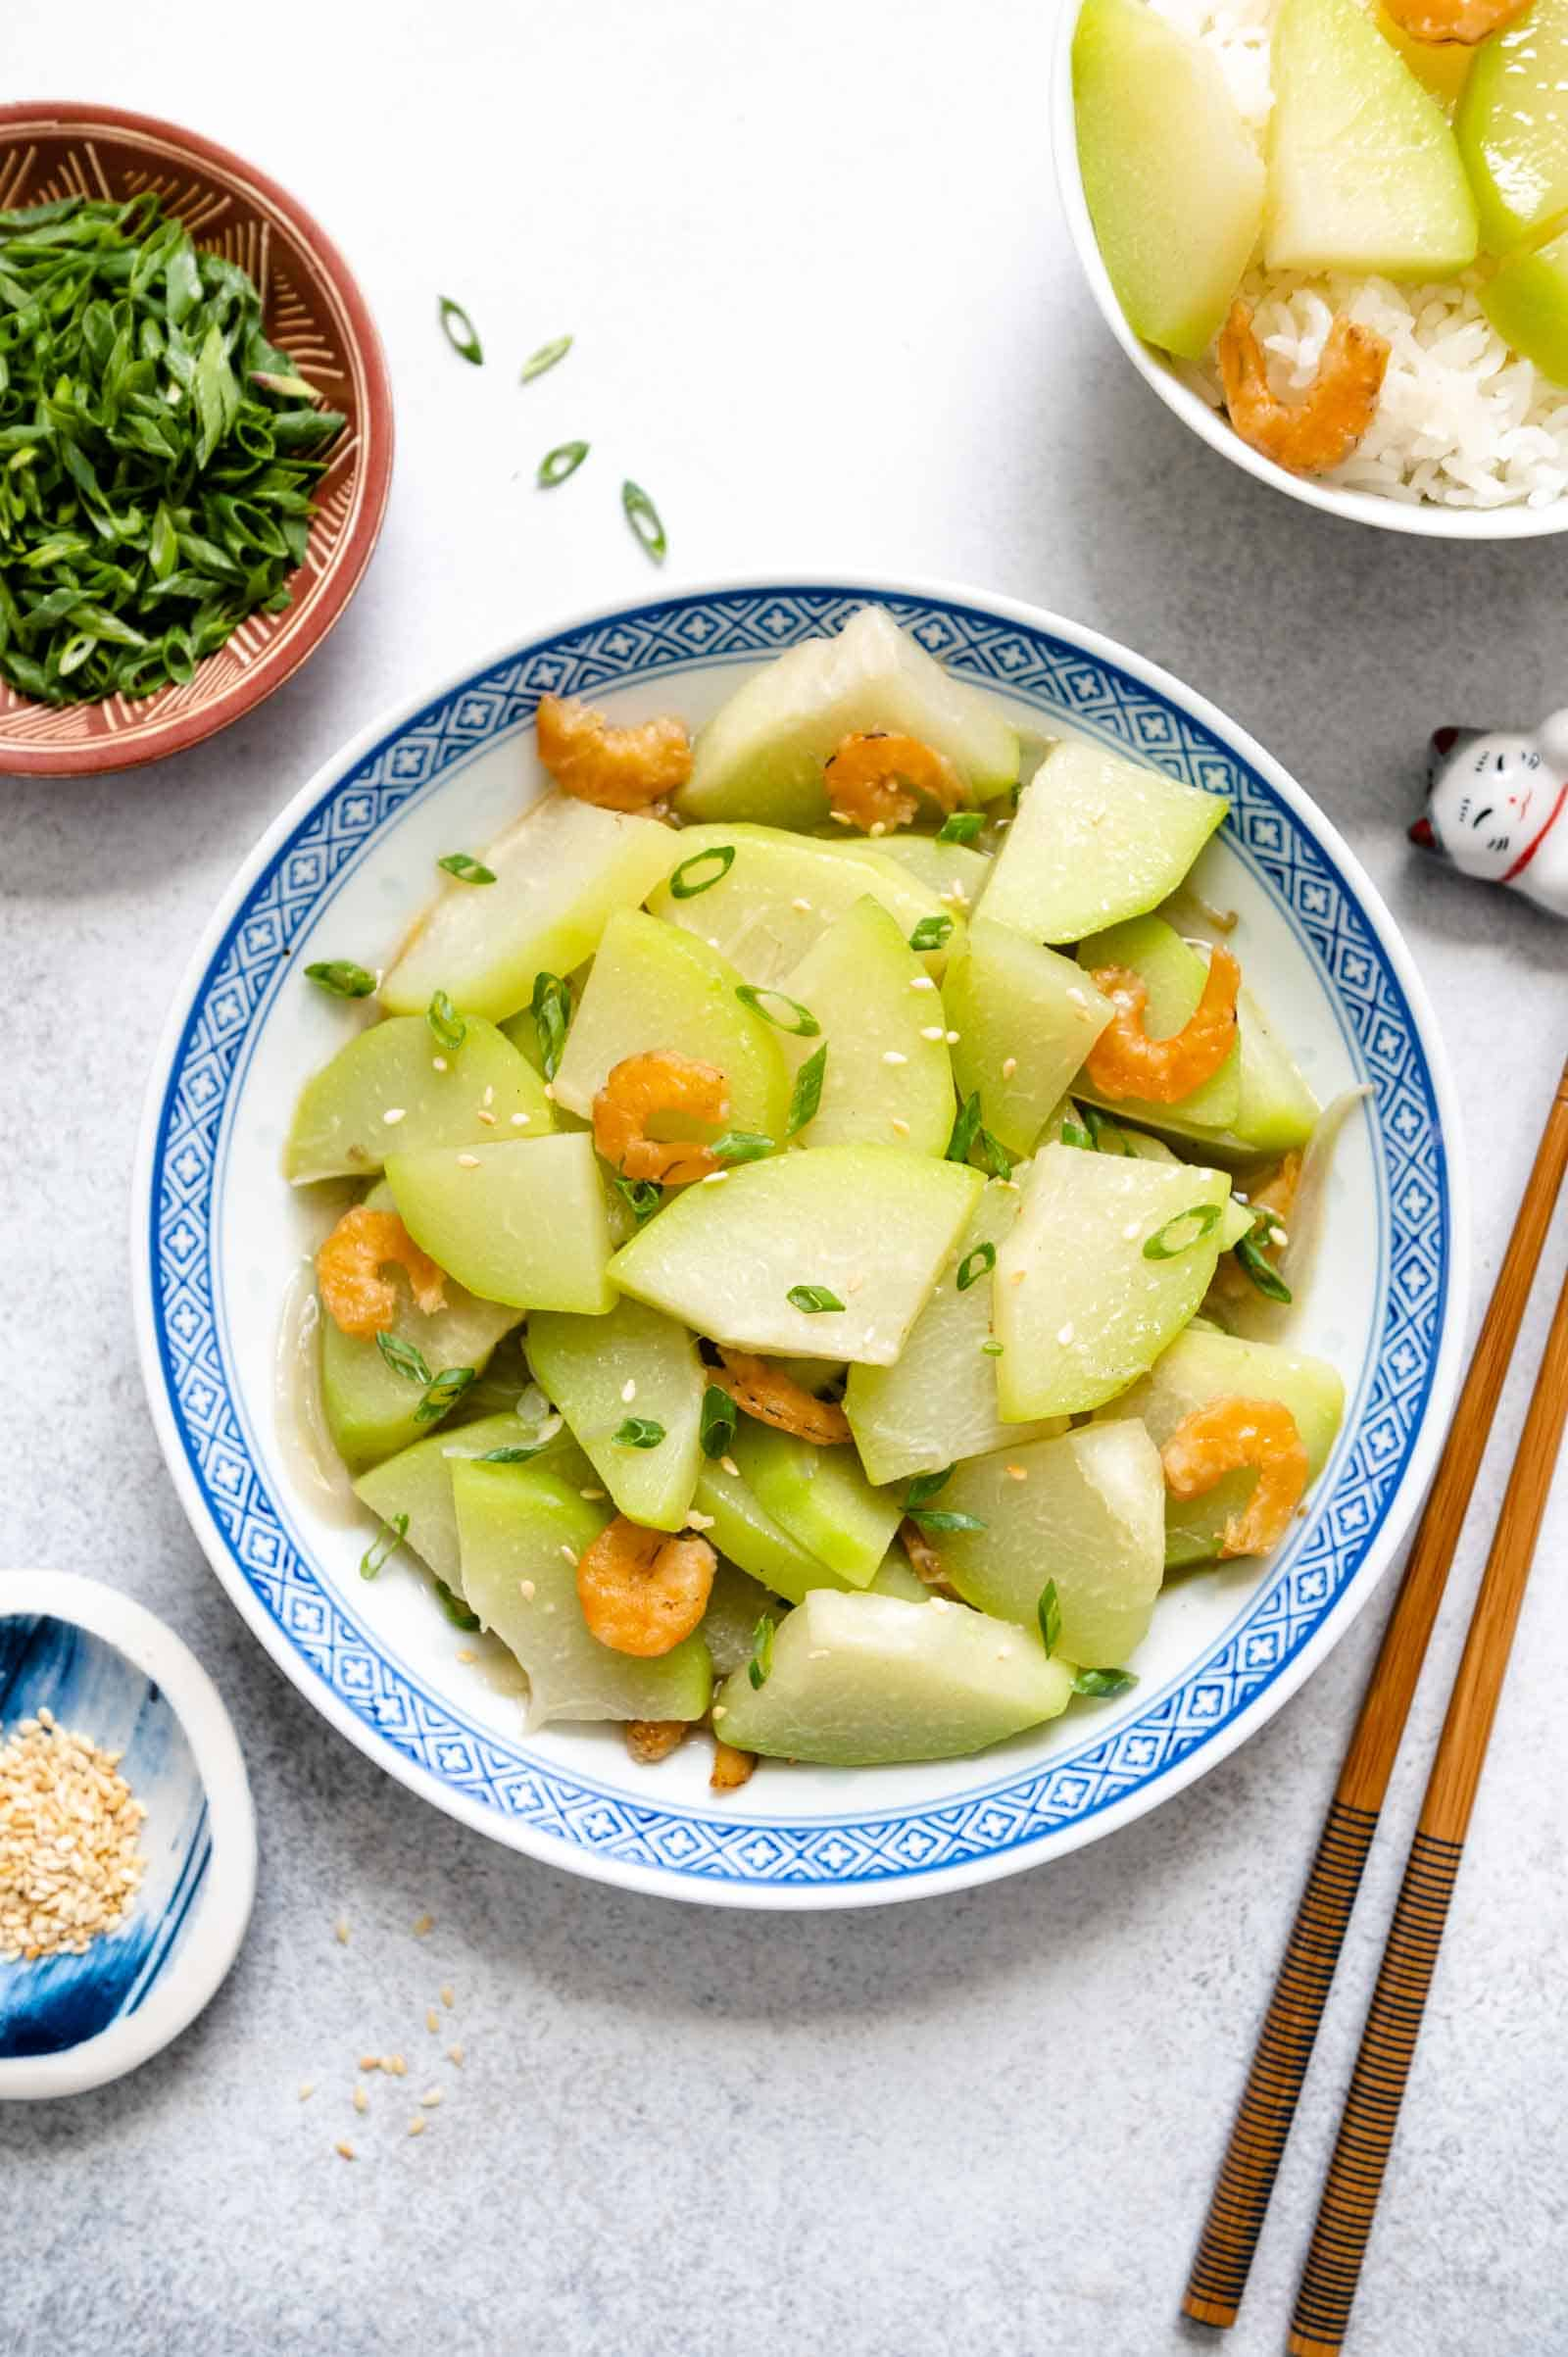 Chinese Stir Fried Chayote in a bowl with garnish